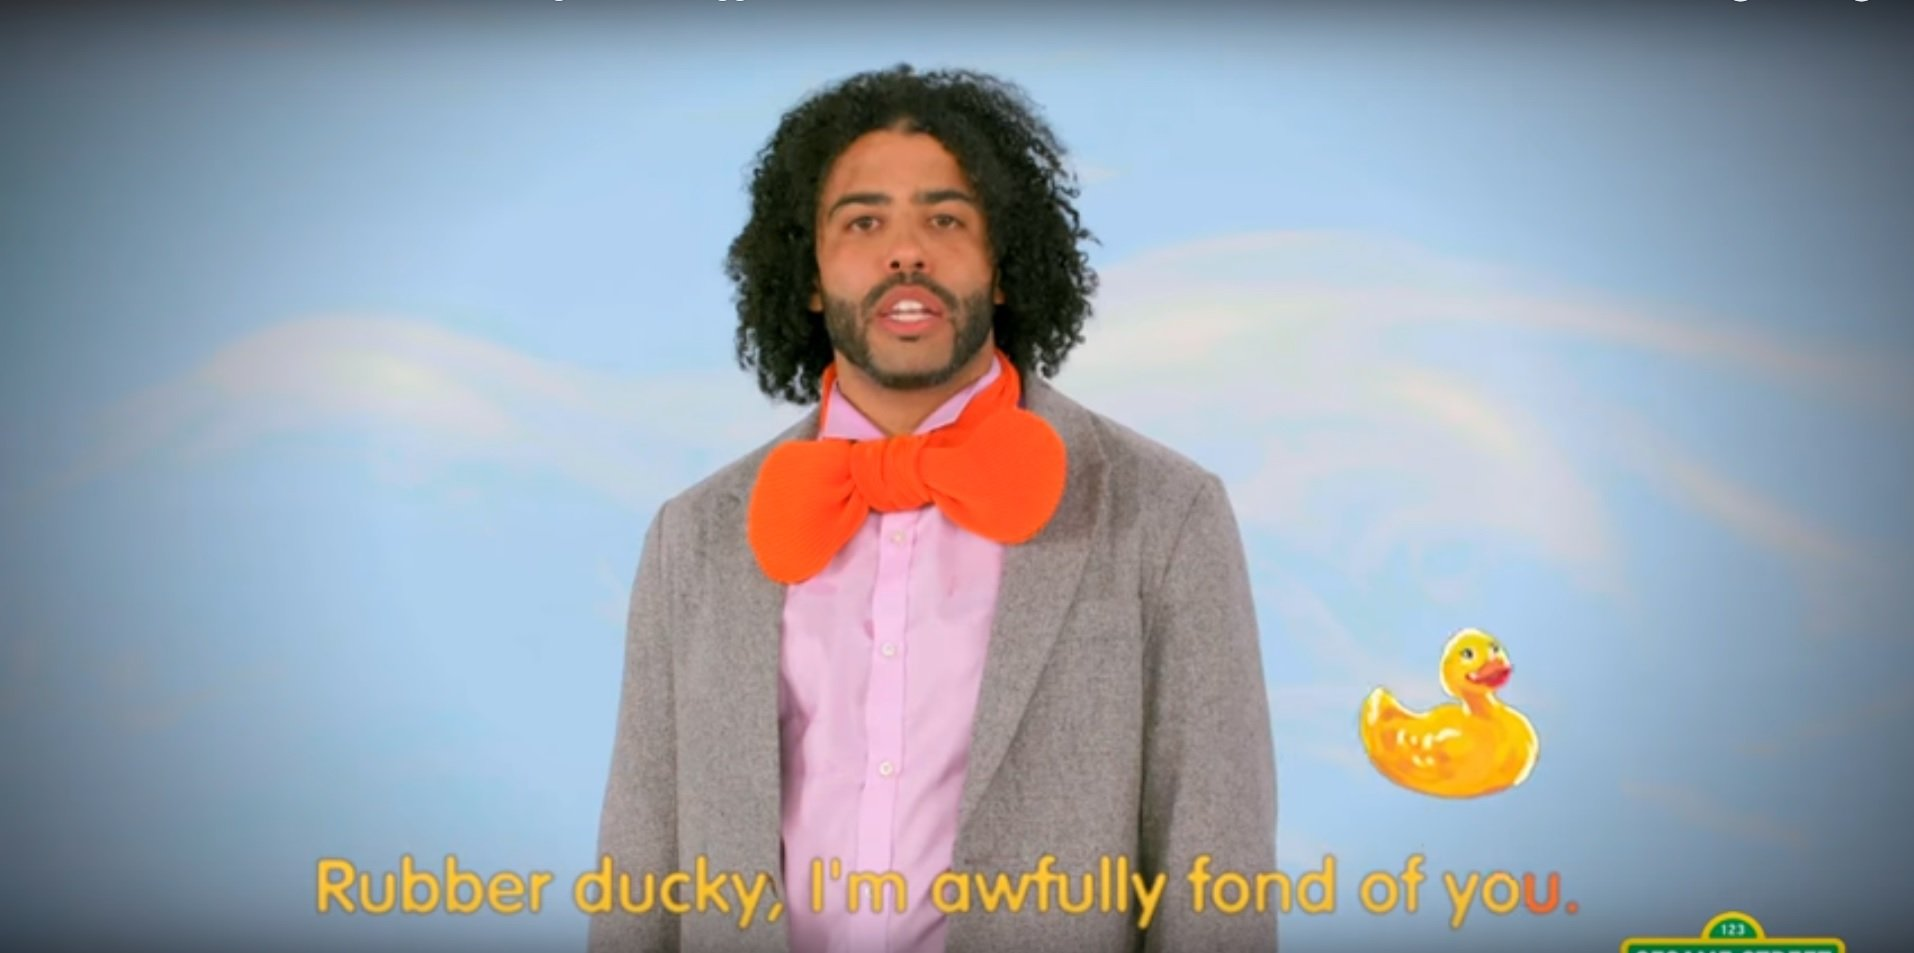 daveed diggs shows love for rubber ducky on sesame street the mary sue